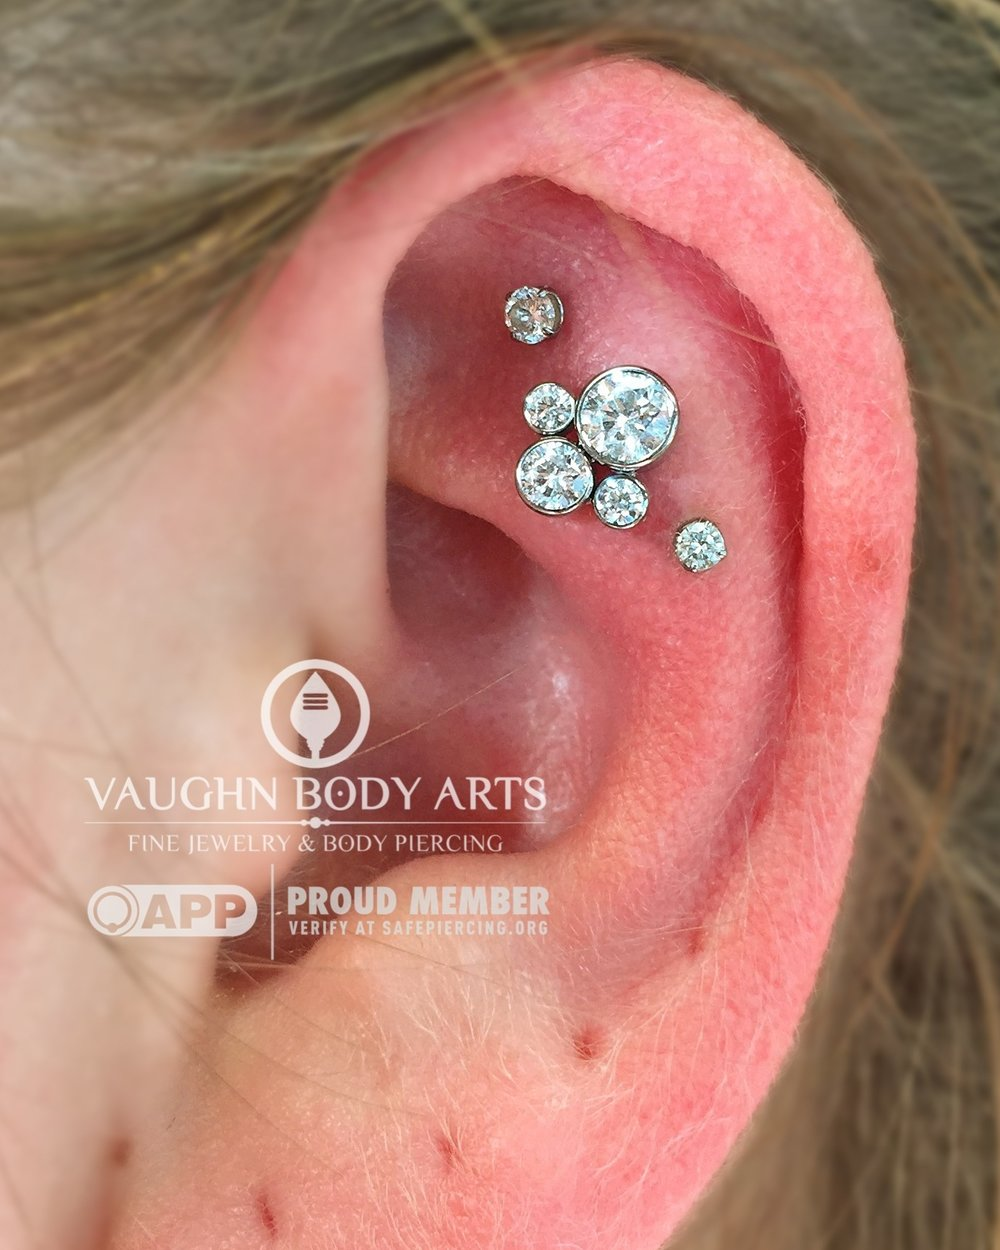 Triple helix piercings with titanium jewelry from NeoMetal and Anatometal.